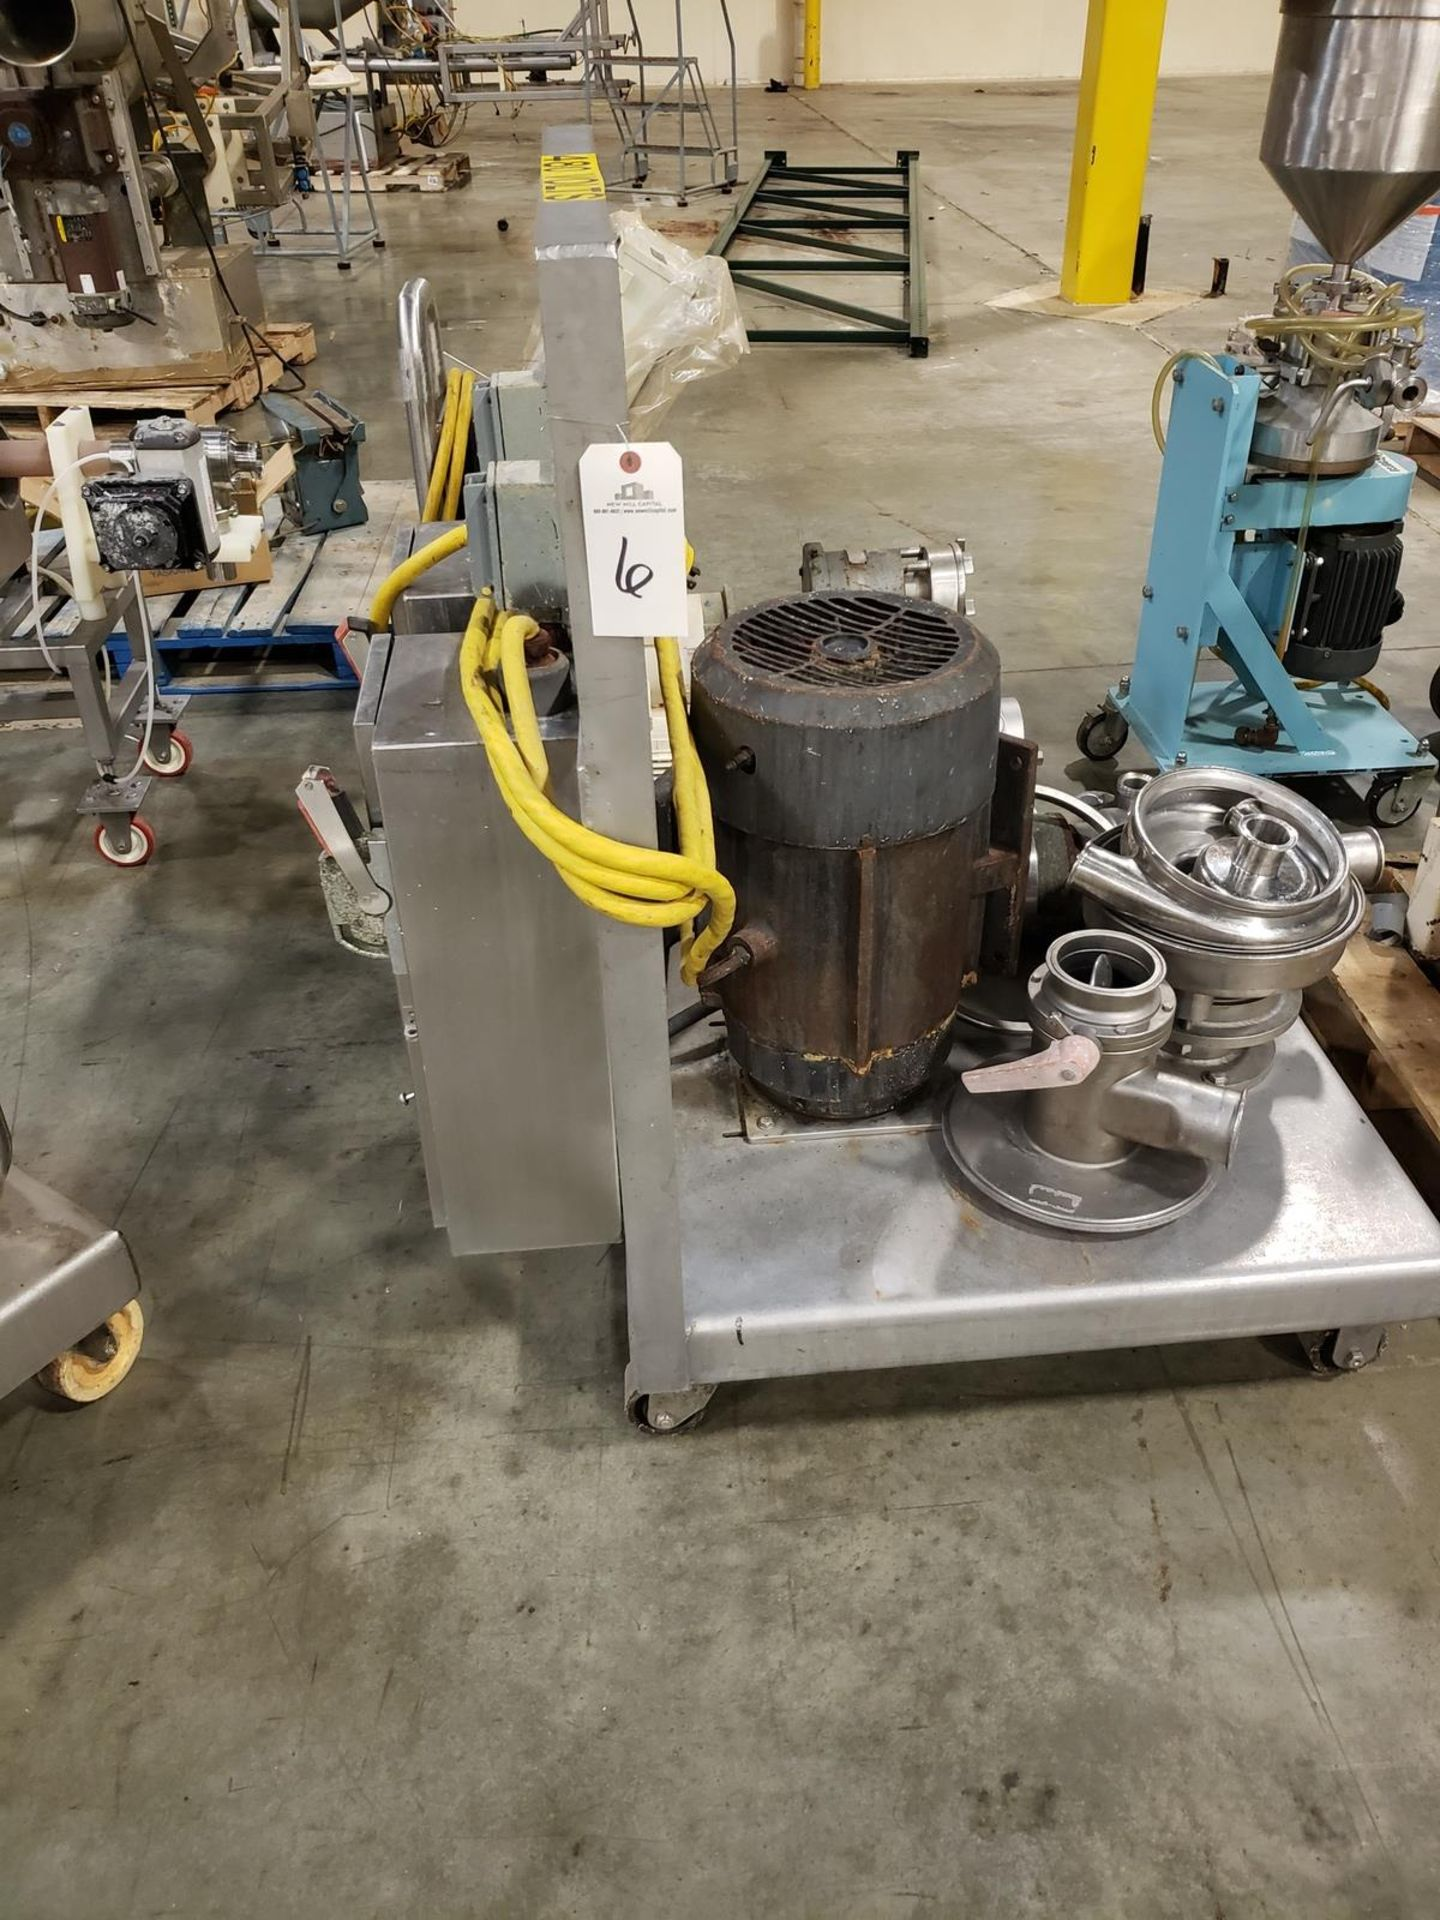 Lot 6 - APV Tri Powder Mixer, 15 HP - Loc: NJ | Rig Fee: $50